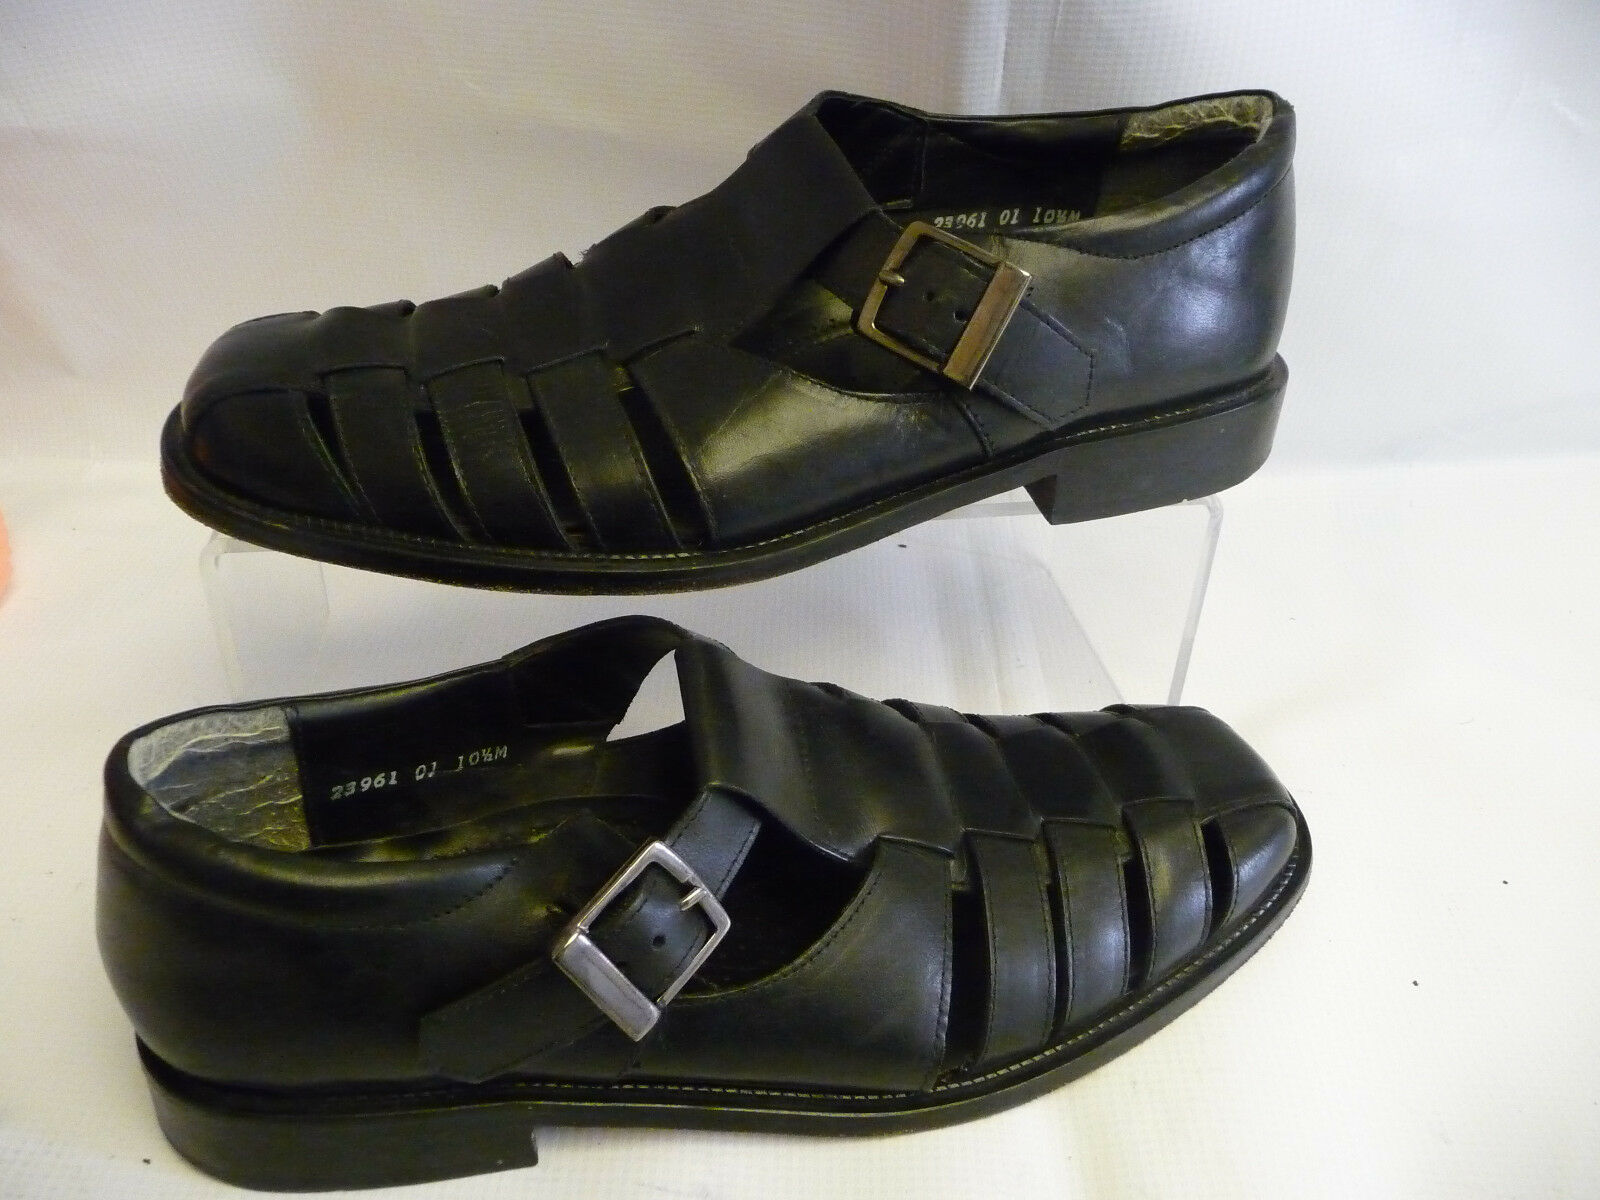 STACY ADAMS Mens Fisherman Sandals Size 10.5M Black Leather Loafers Buckle